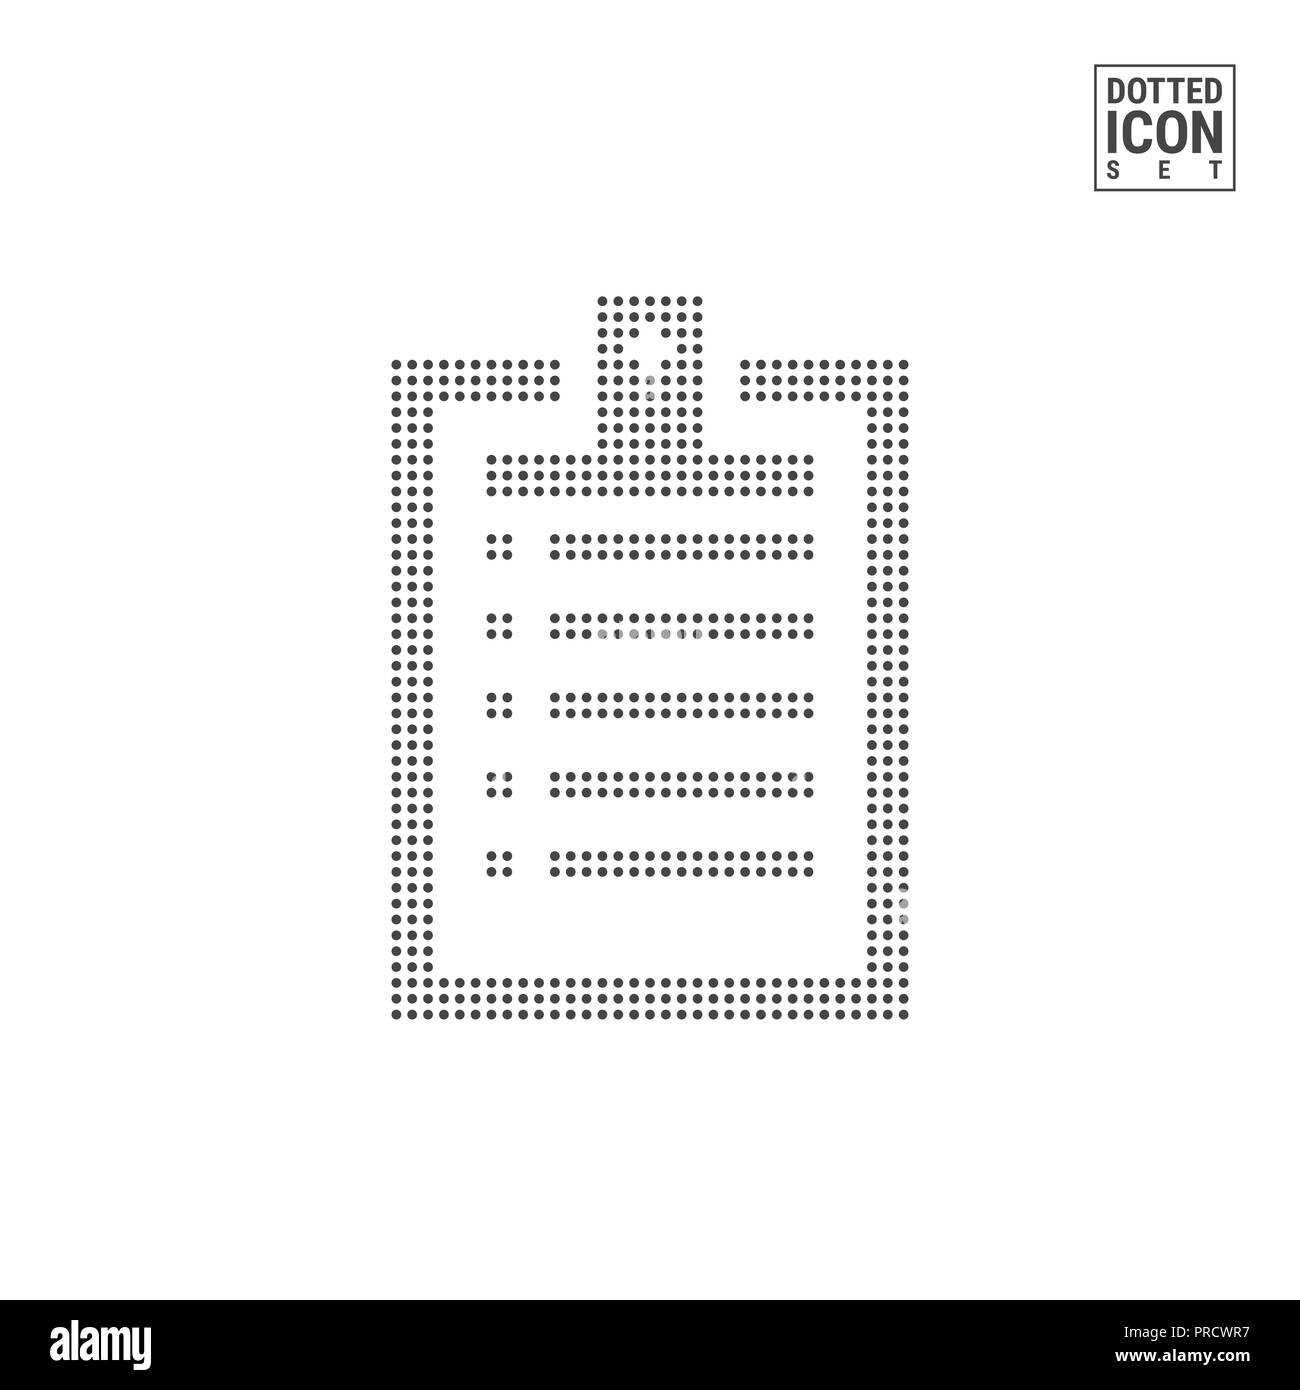 to do list dot pattern icon clipboard dotted icon isolated on white